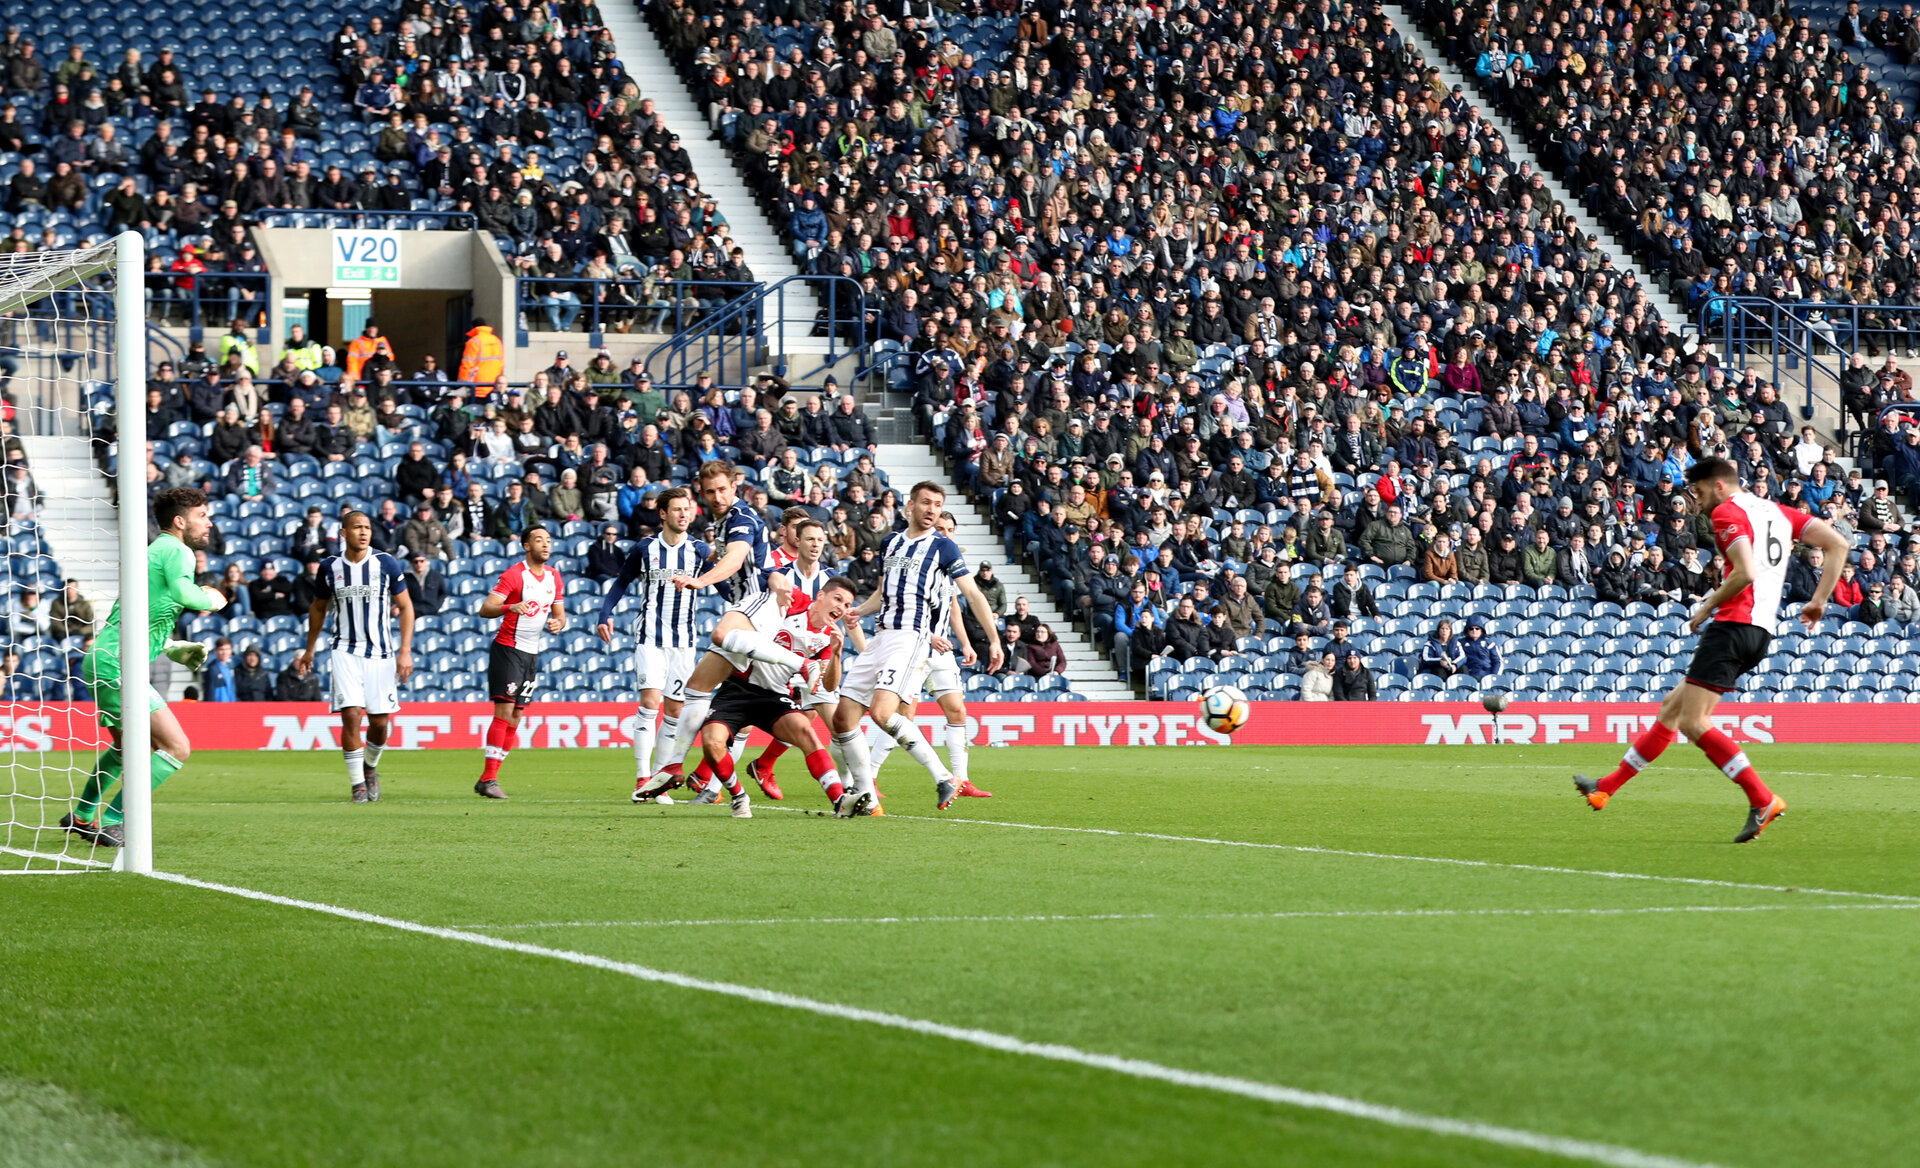 WEST BROMWICH, ENGLAND - FEBRUARY 17: Wesley Hoedt(R) of Southampton opens the scoring during the Emirates FA Cup fifth round match between West Bromwich Albion and Southampton at The Hawthorns on February 17, 2018 in West Bromwich, England. (Photo by Matt Watson/Southampton FC via Getty Images)